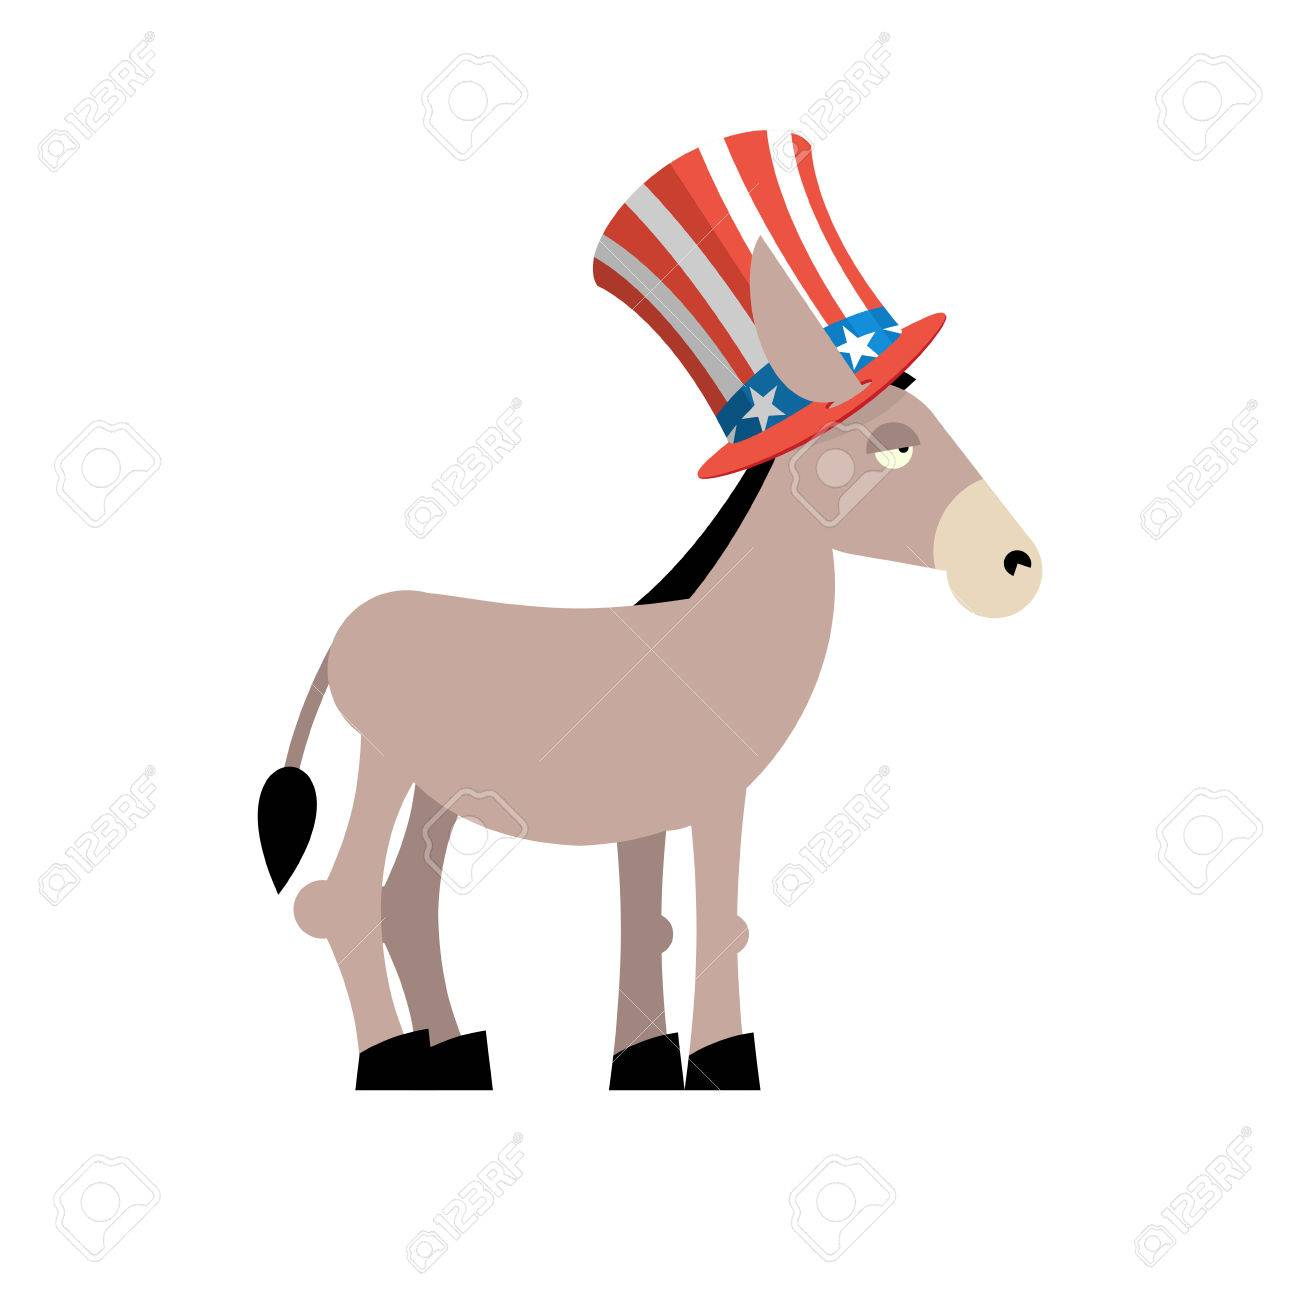 Democratic Donkey Stock Photos Royalty Free Democratic